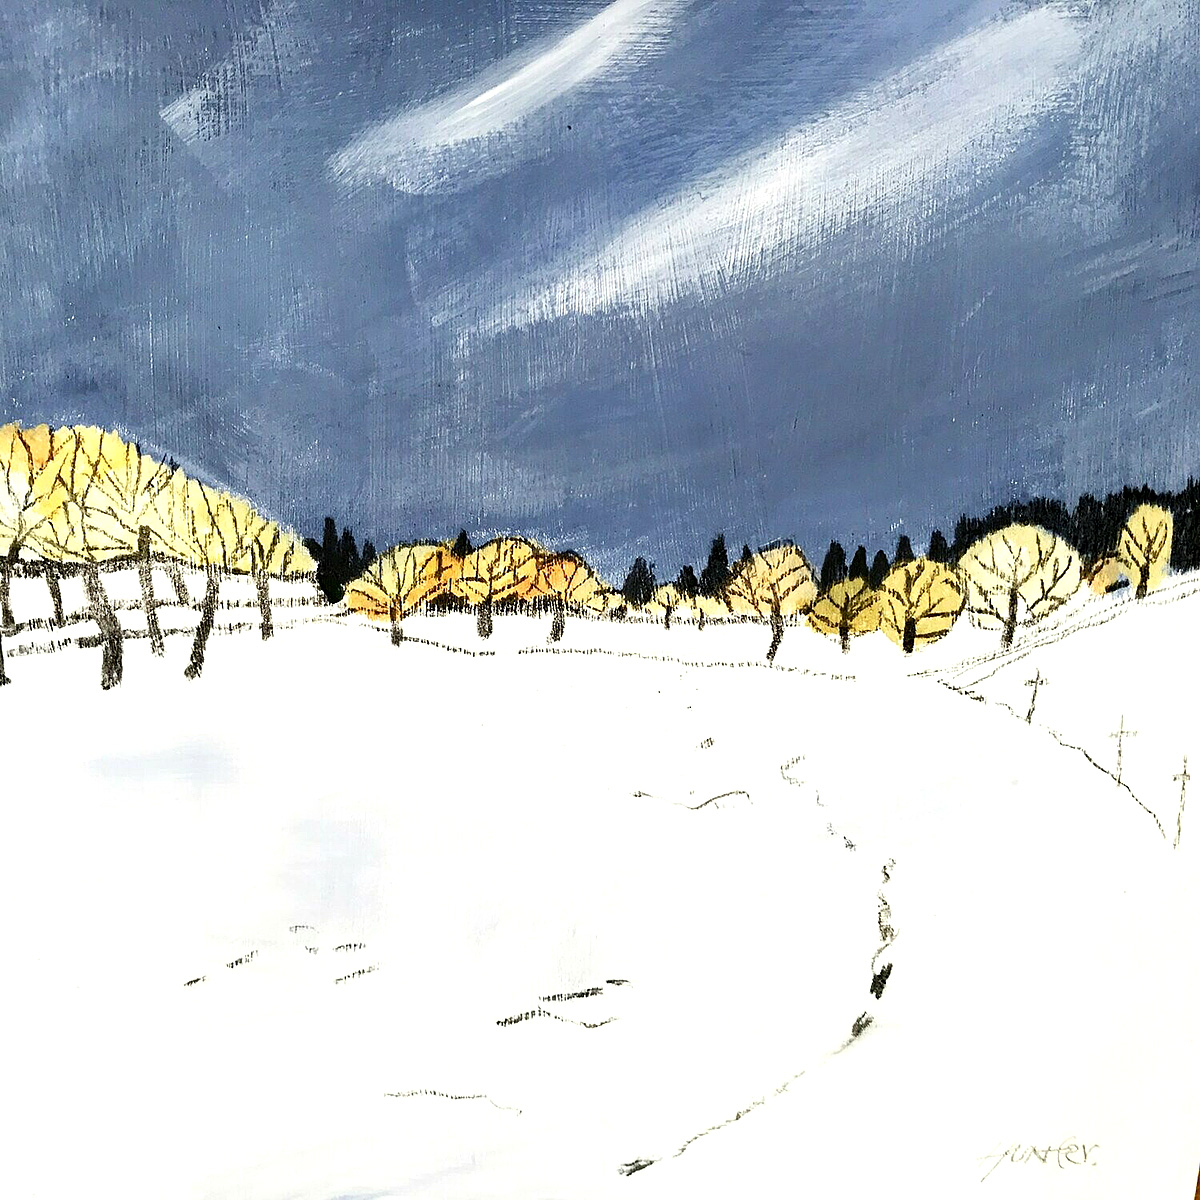 Andrew Hunter - Winter Blast, acrylic on board